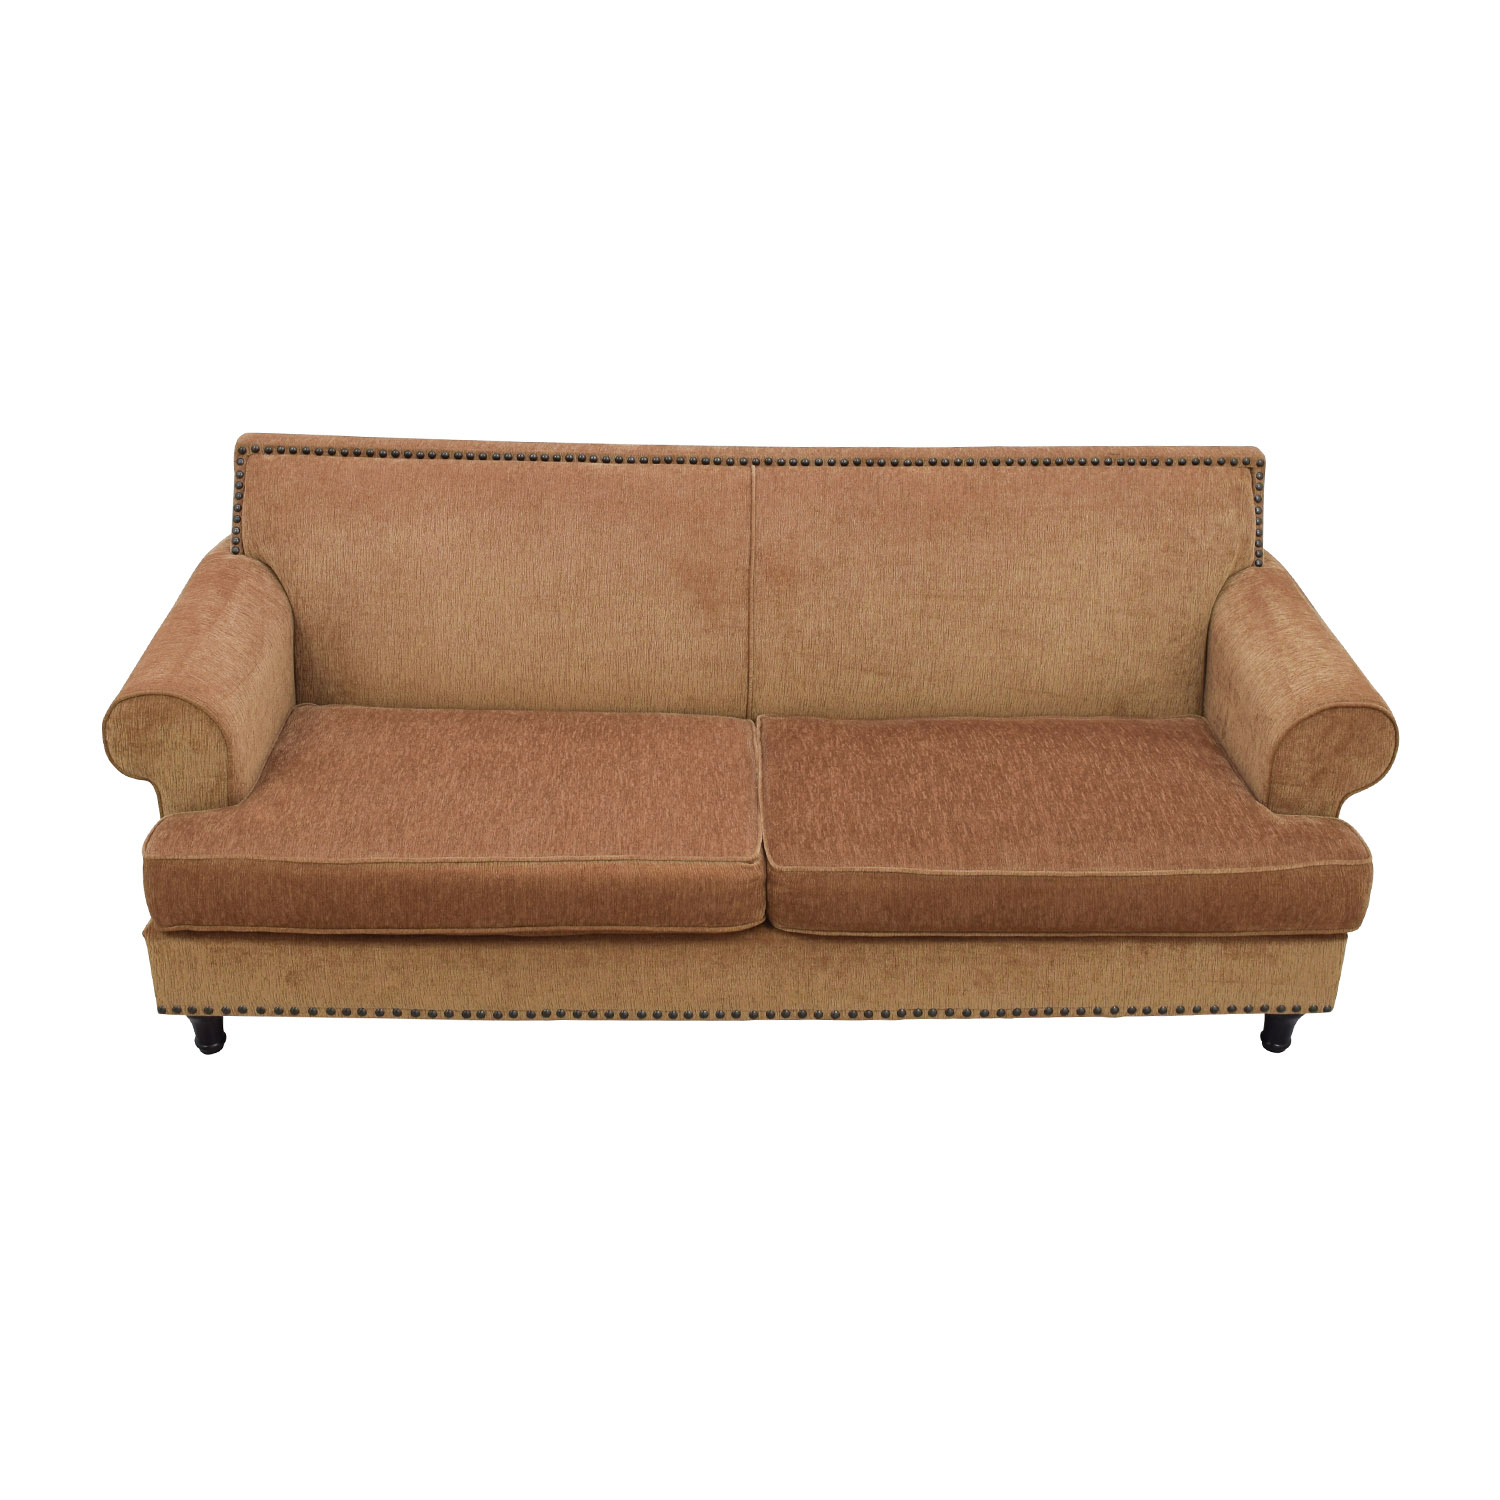 buy Pier 1 Imports Carmen Brown Sofa Pier 1 Imports Sofas